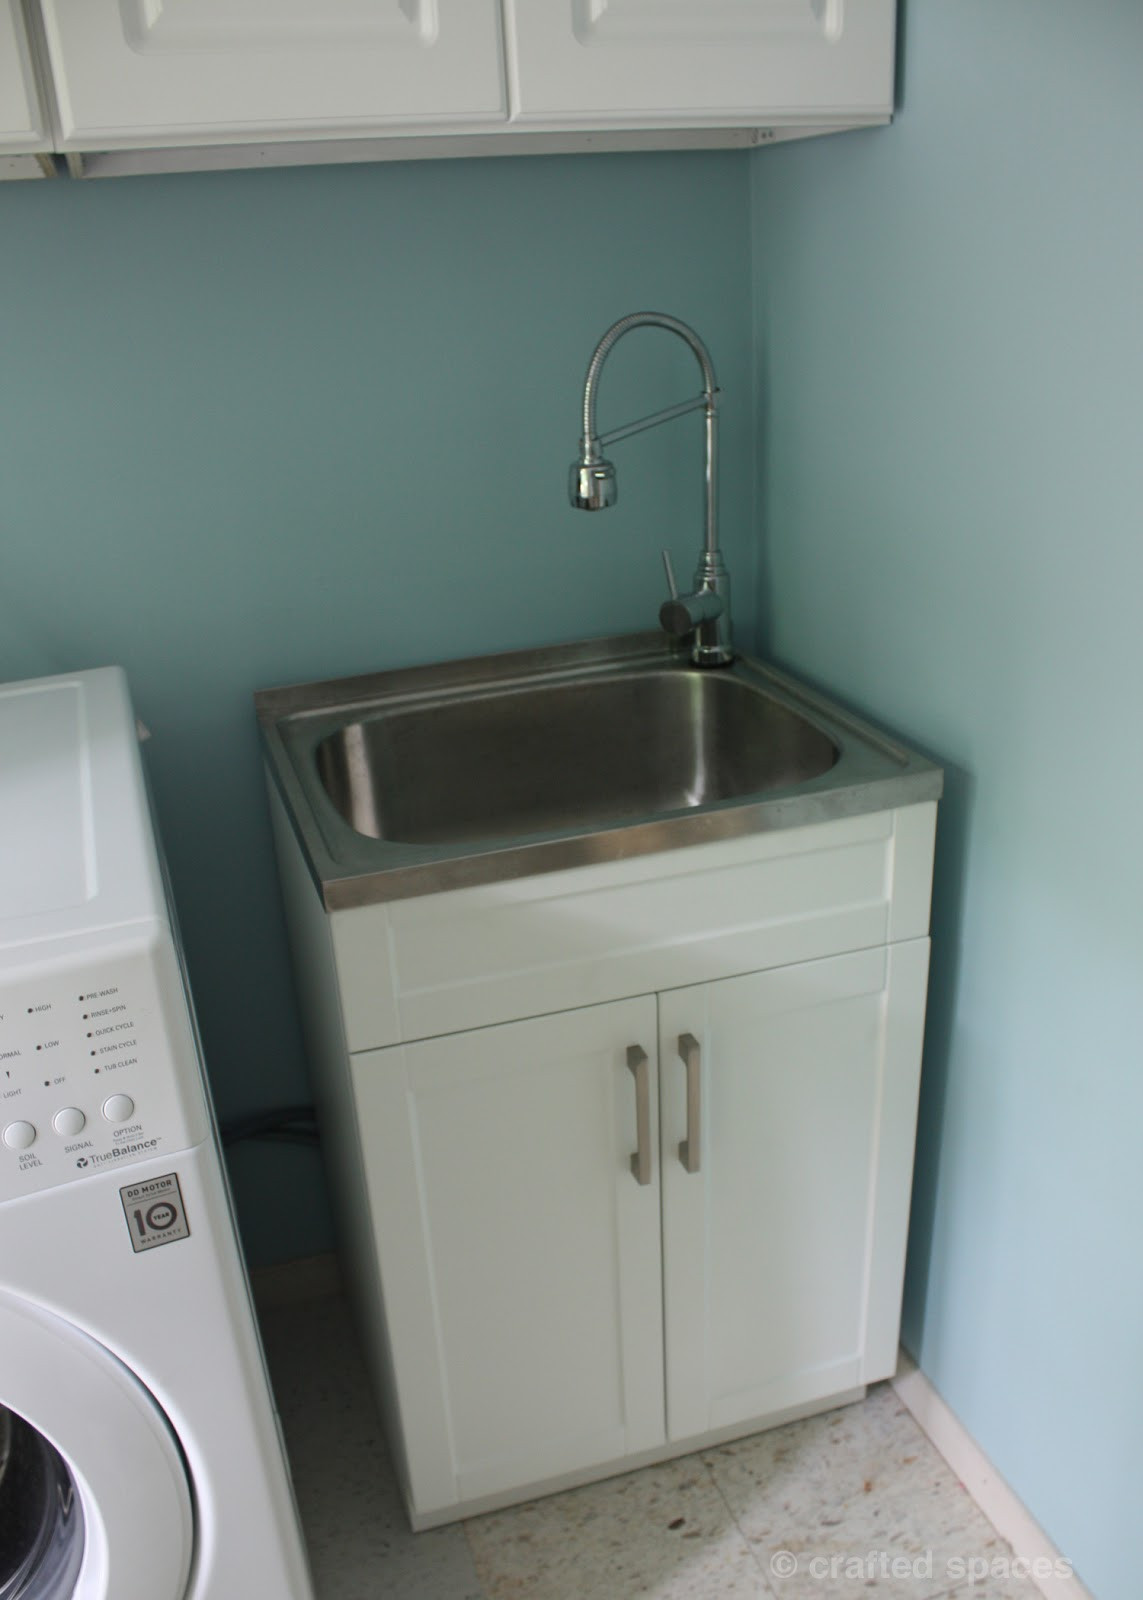 Best ideas about Laundry Room Utility Sink . Save or Pin Crafted Spaces At Home Laundry Room Makeover Now.